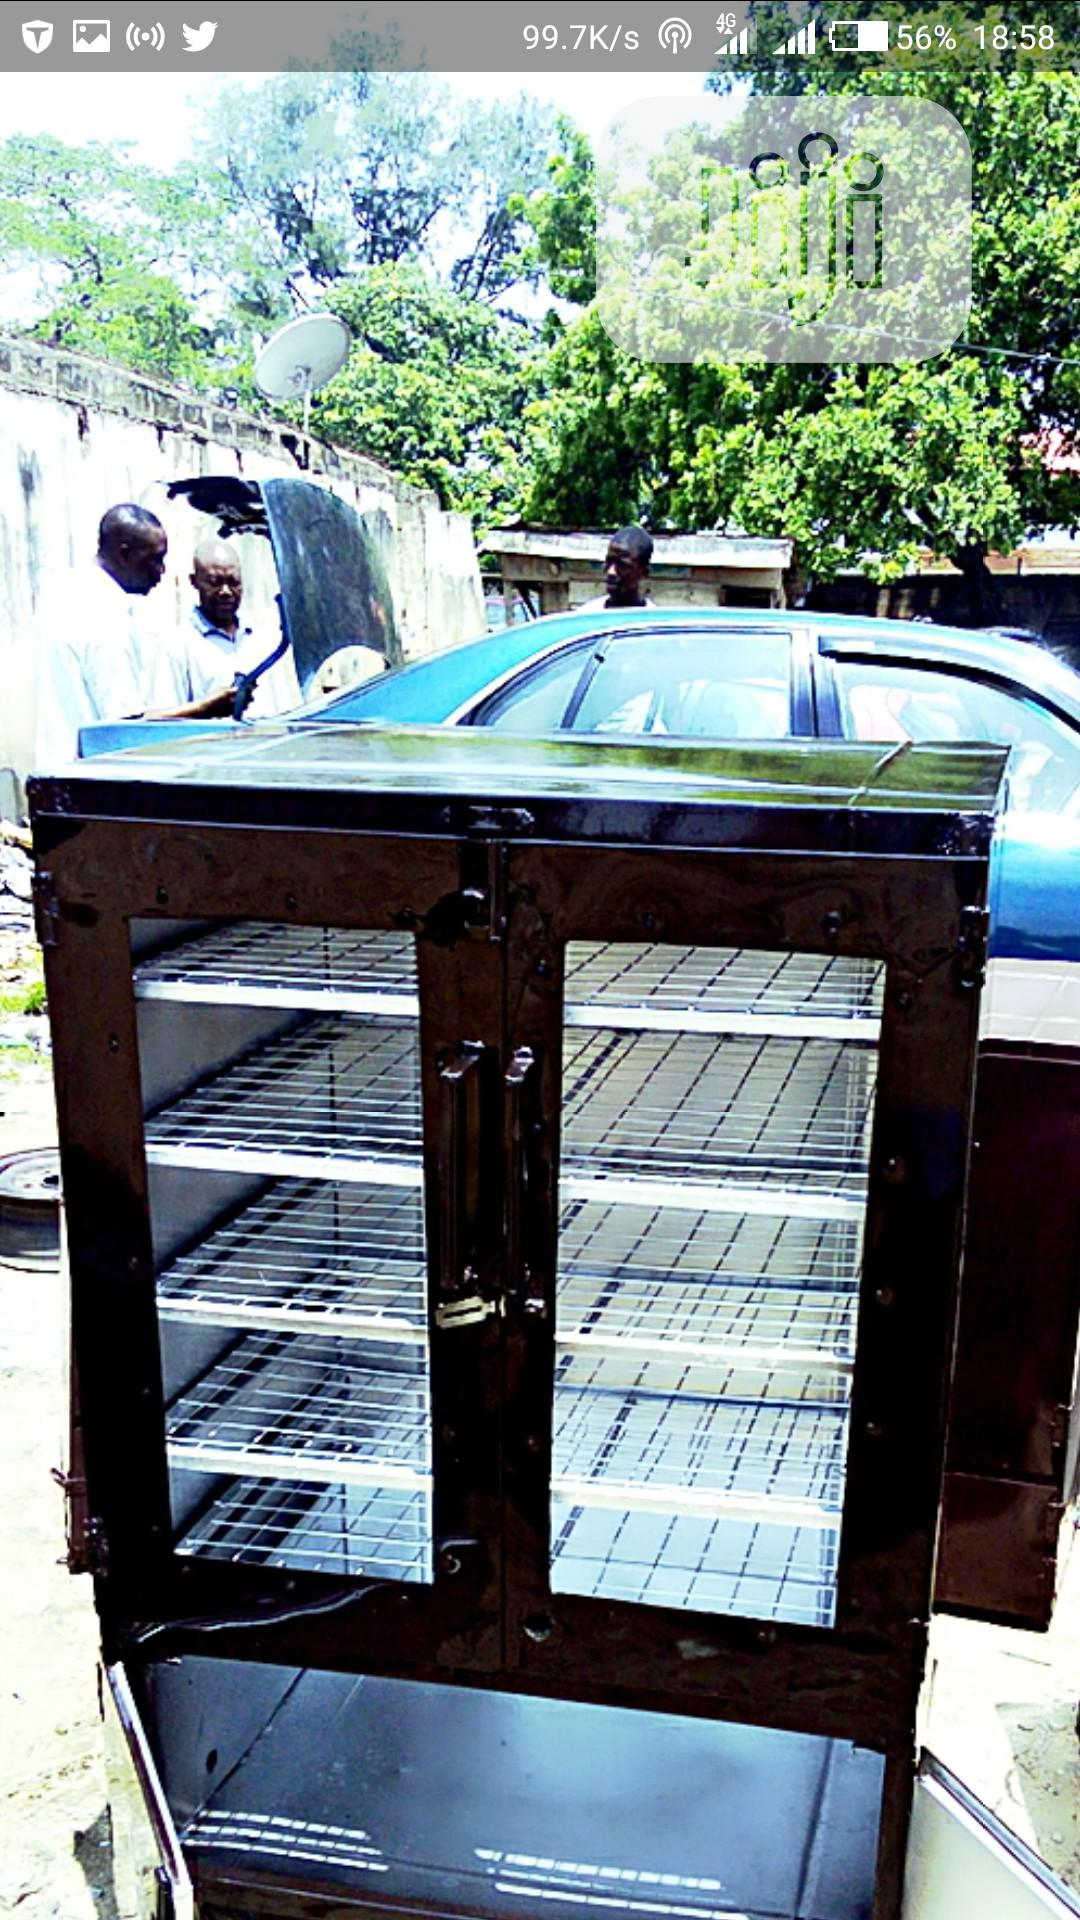 Easy-tech Enterprises Gas Oven 5   Industrial Ovens for sale in Ilorin West, Kwara State, Nigeria